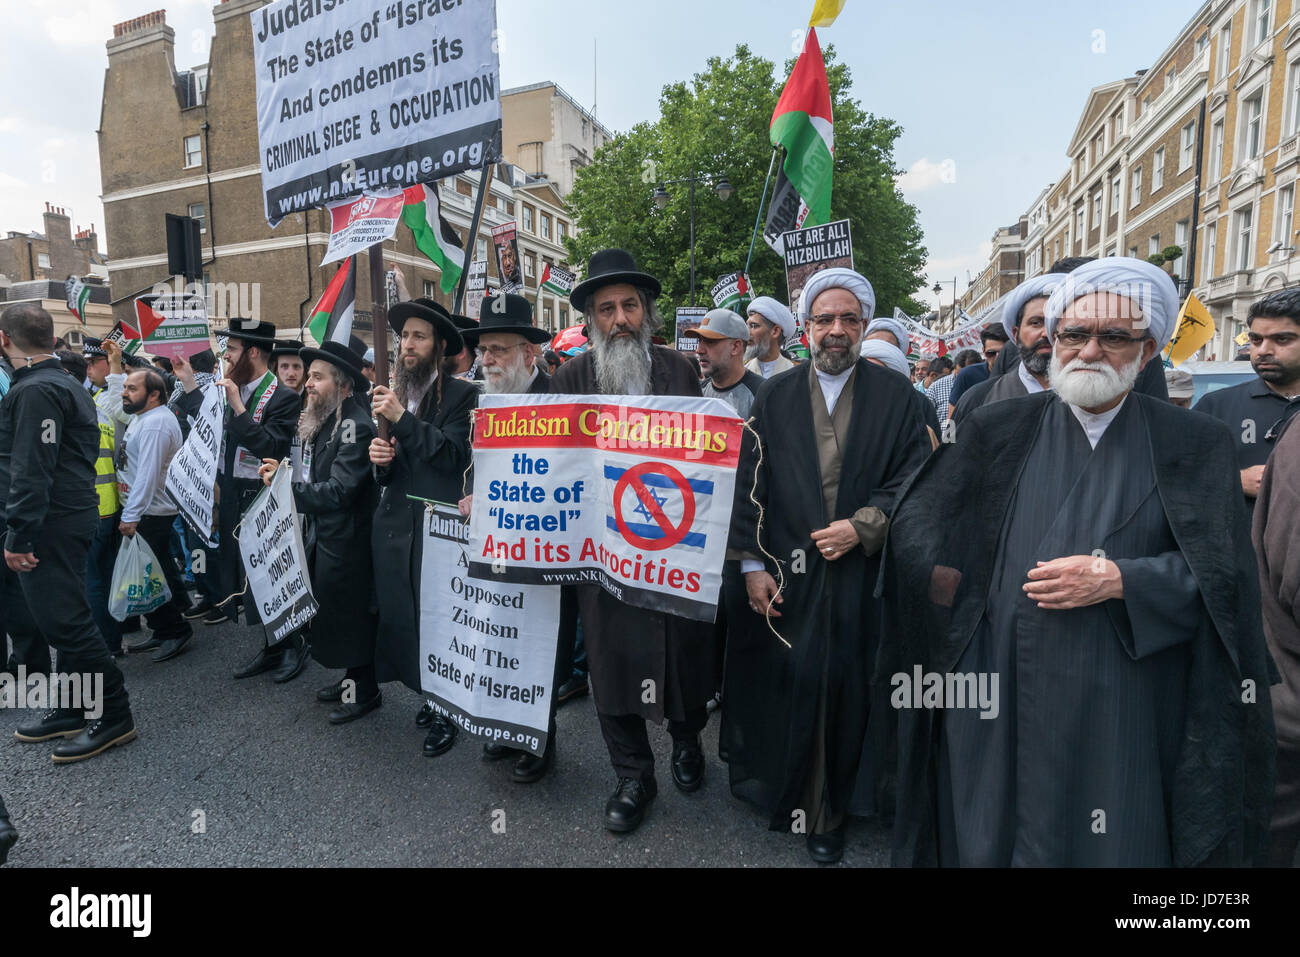 London, UK. 18th June, 2017. London, UK. 18th June 2017. The annual Al Quds (Jerusalem) Day march in London sets Stock Photo